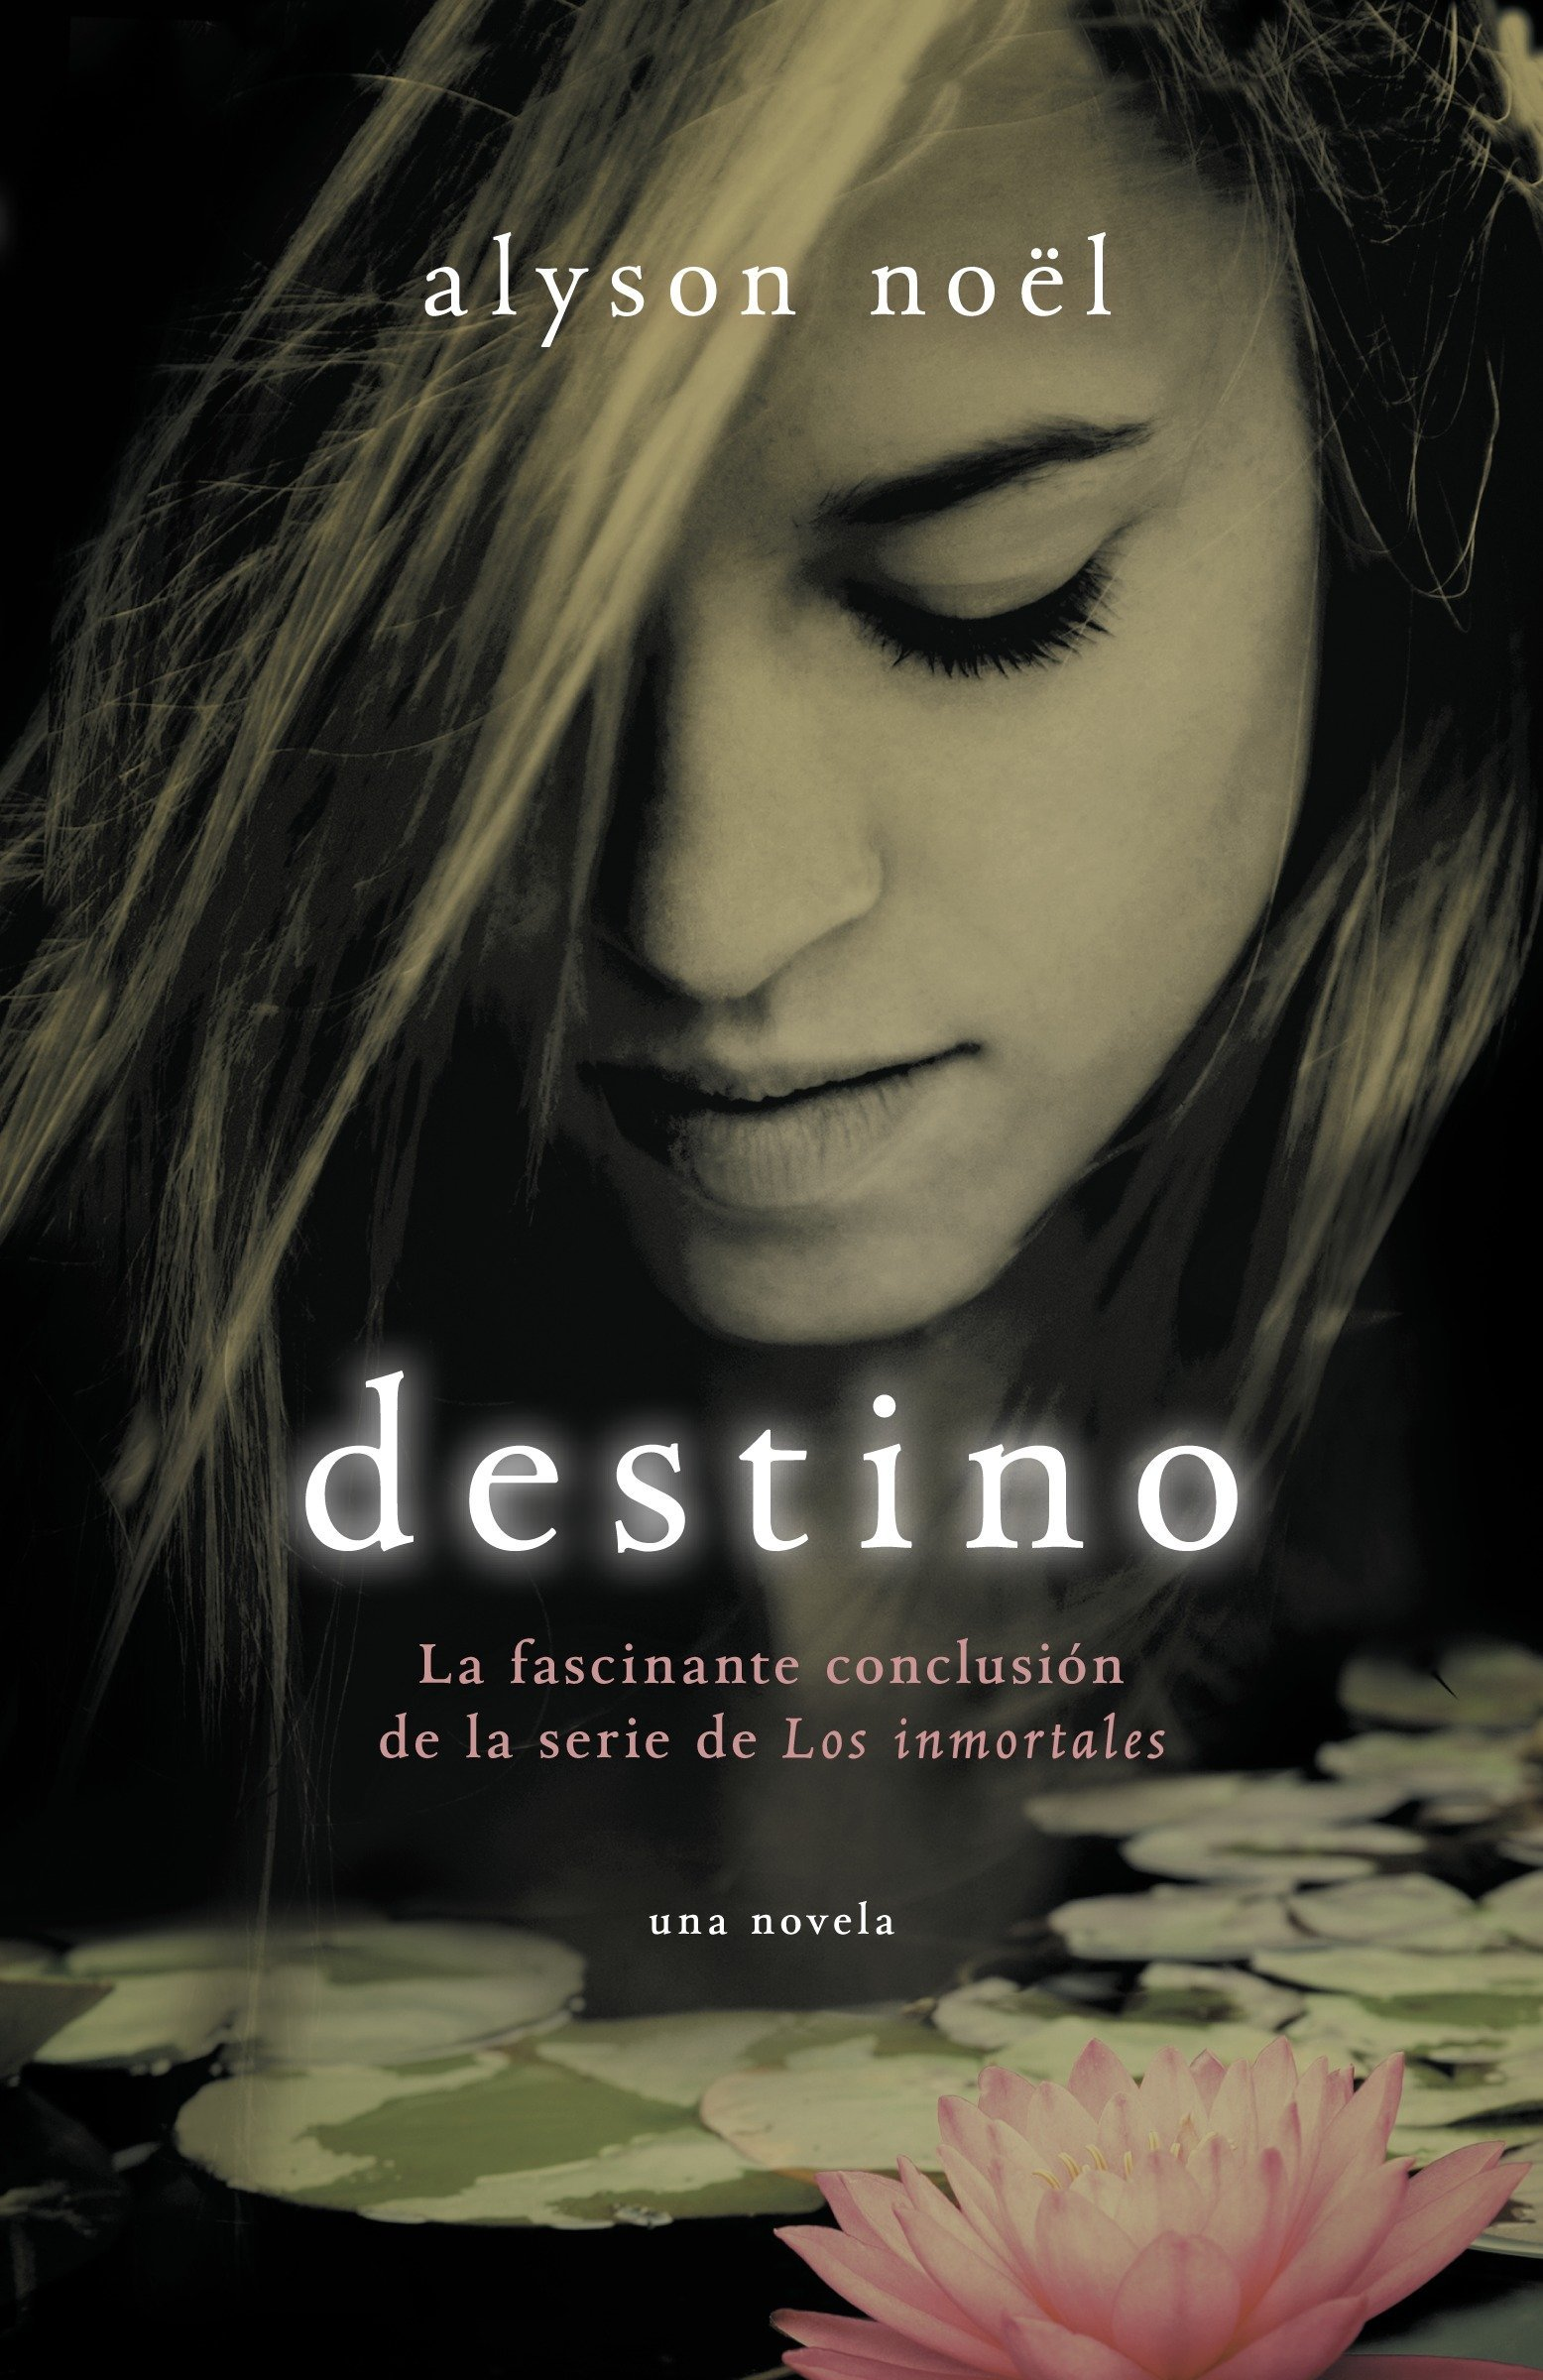 Amazon.com: Destino: La fascinante conclusión de la serie de Los inmortales (Spanish Edition) (9780307951489): Alyson Noel: Books